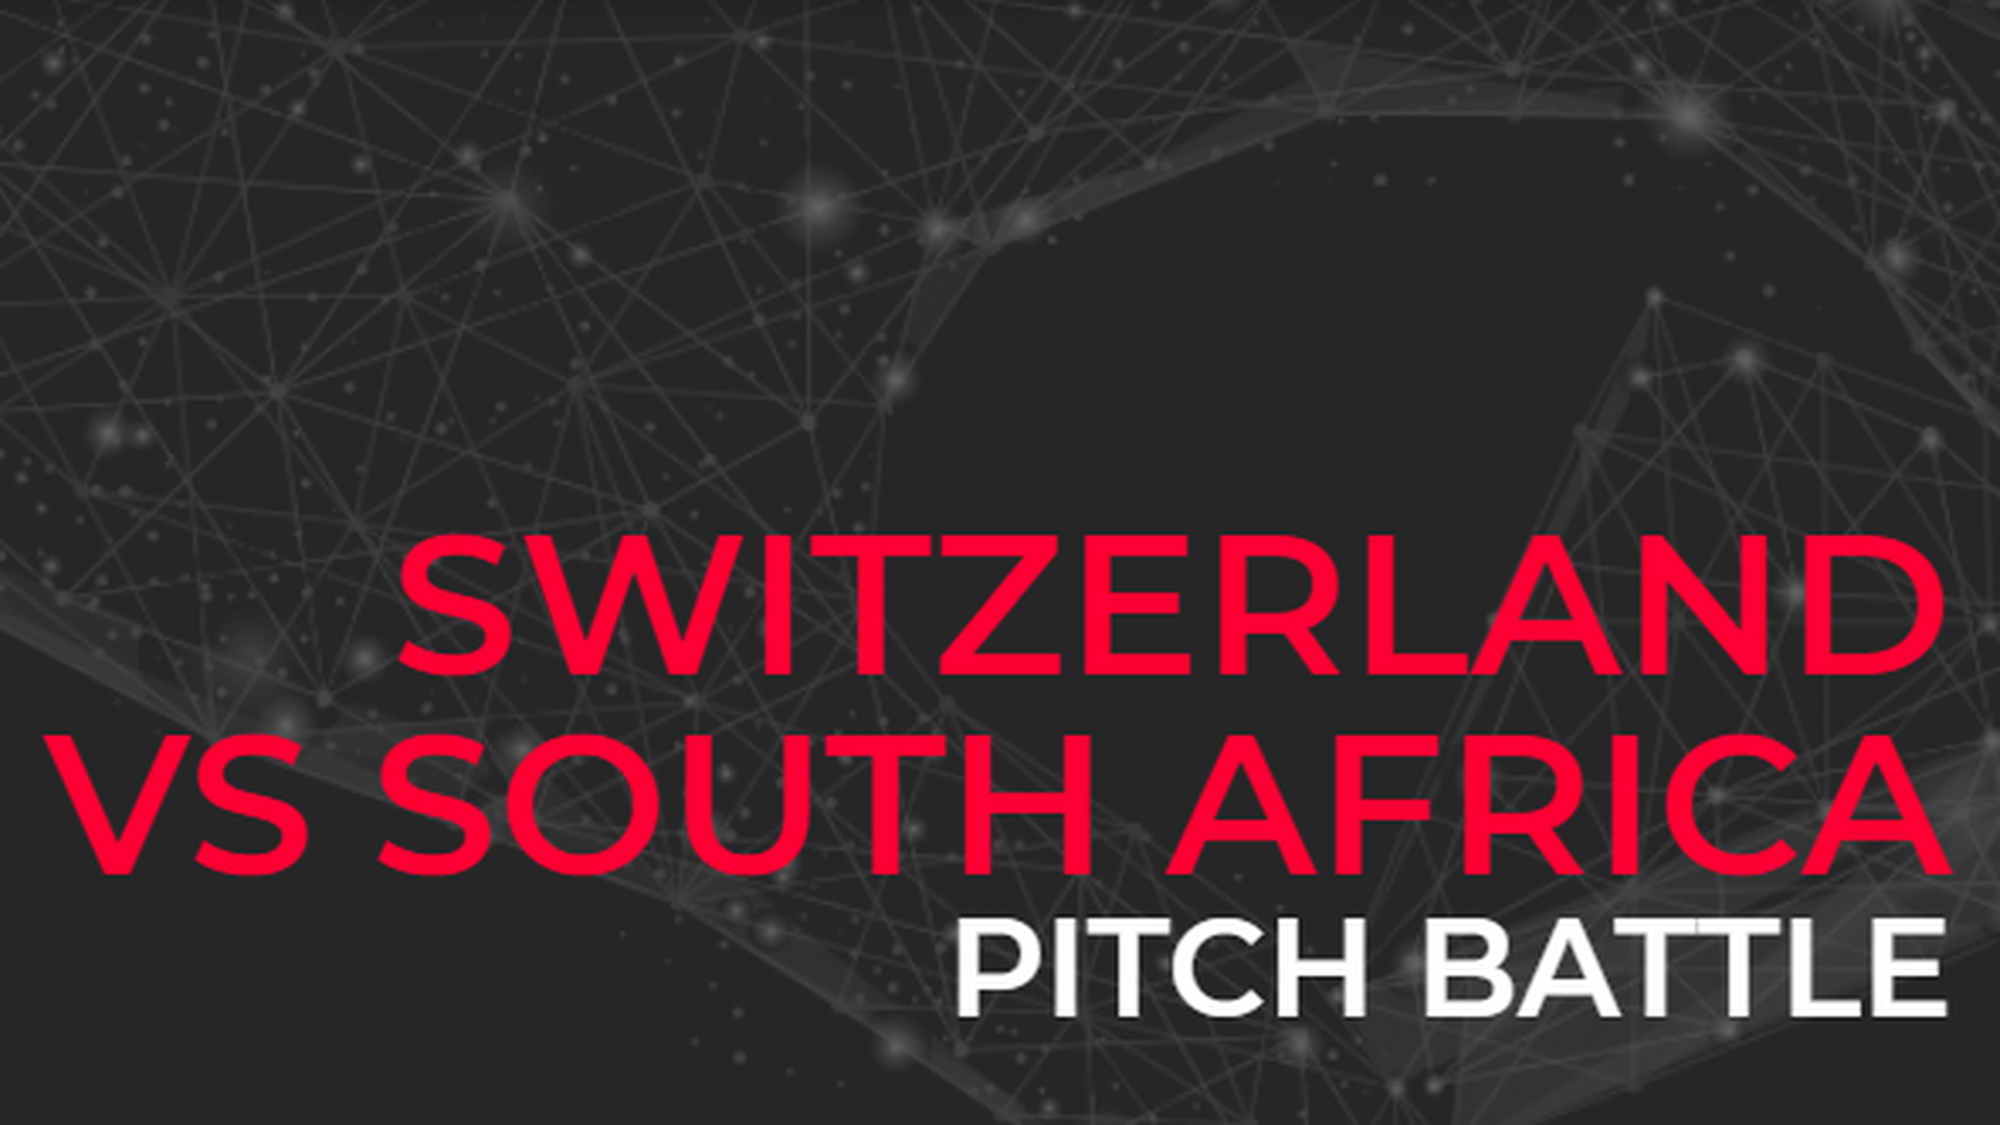 Swiss South African Pitch Battle at the 2020 South African Innovation Summit